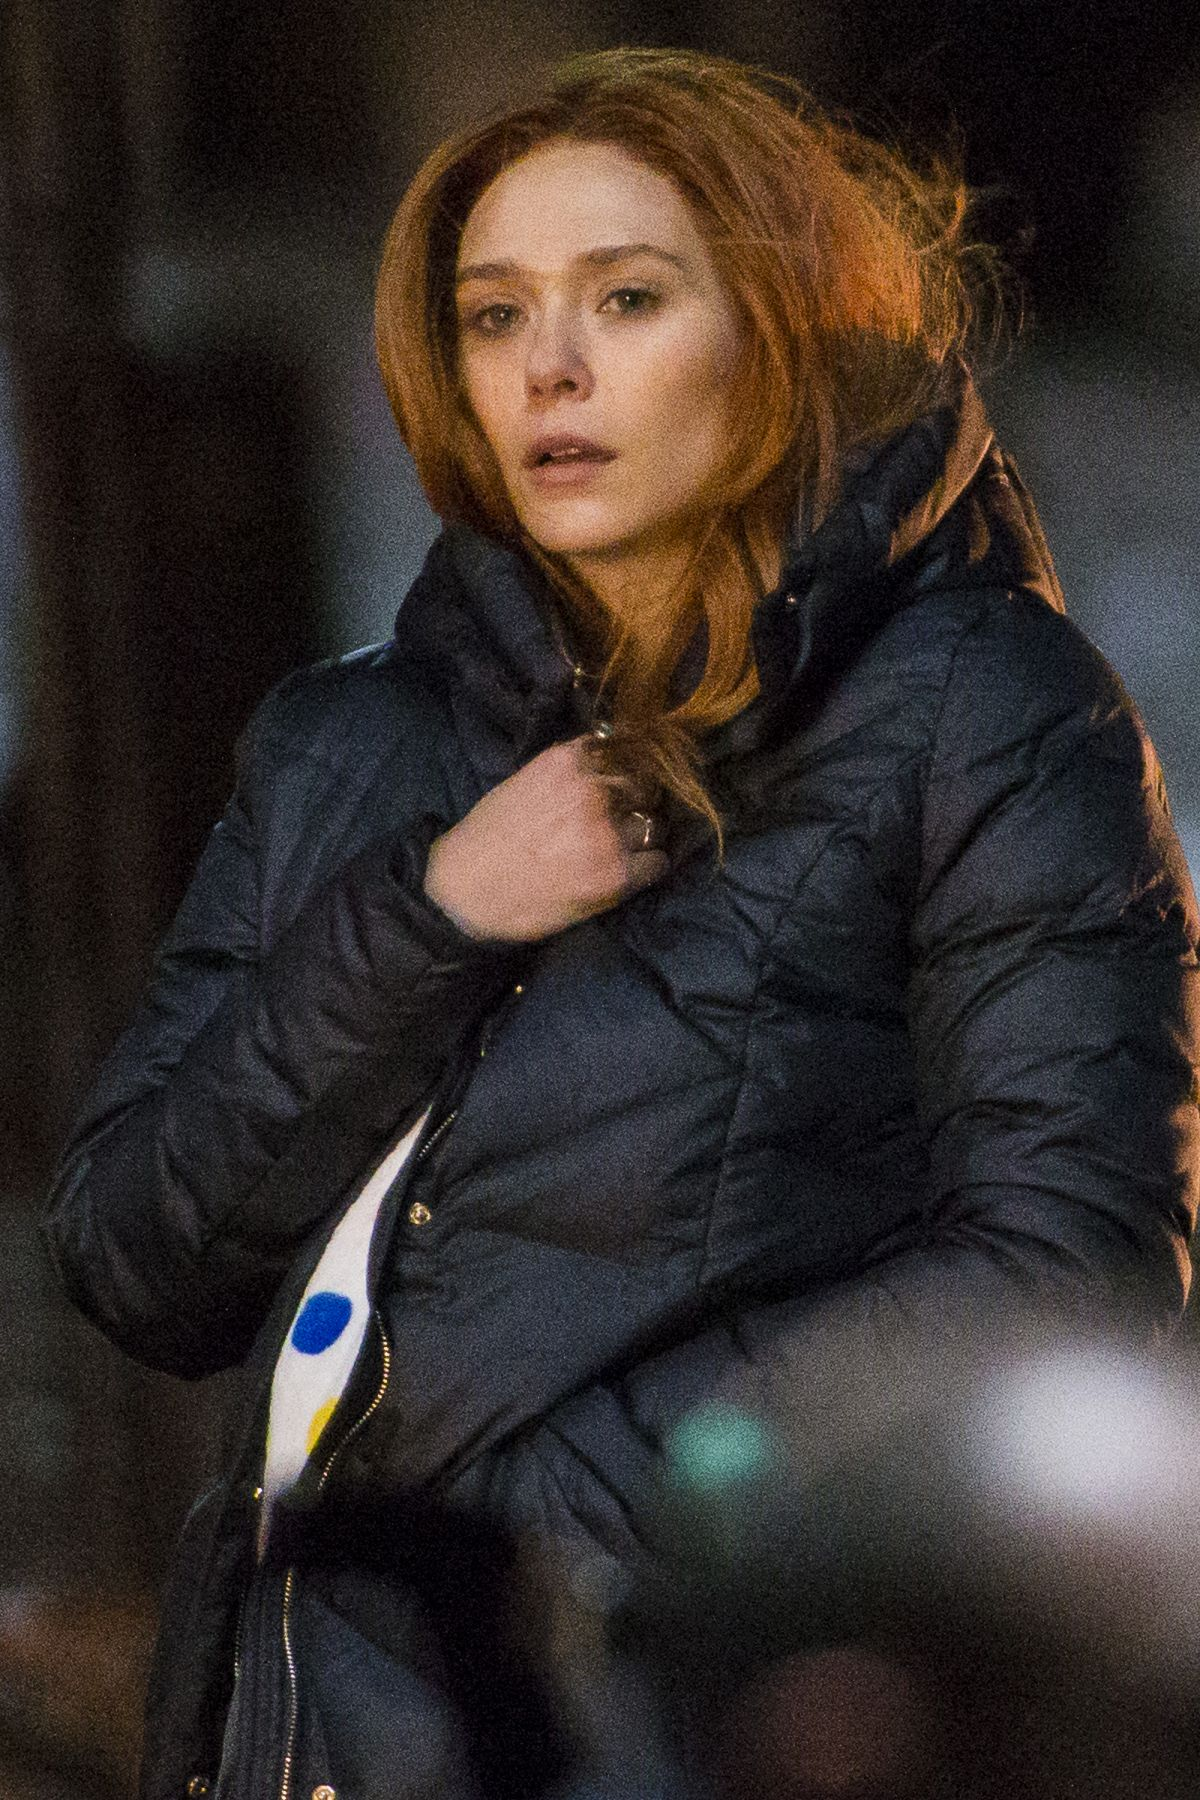 ELIZABETH OLSEN on the Set of Avengers: Infinity War in Edinburgh 04/05/2017